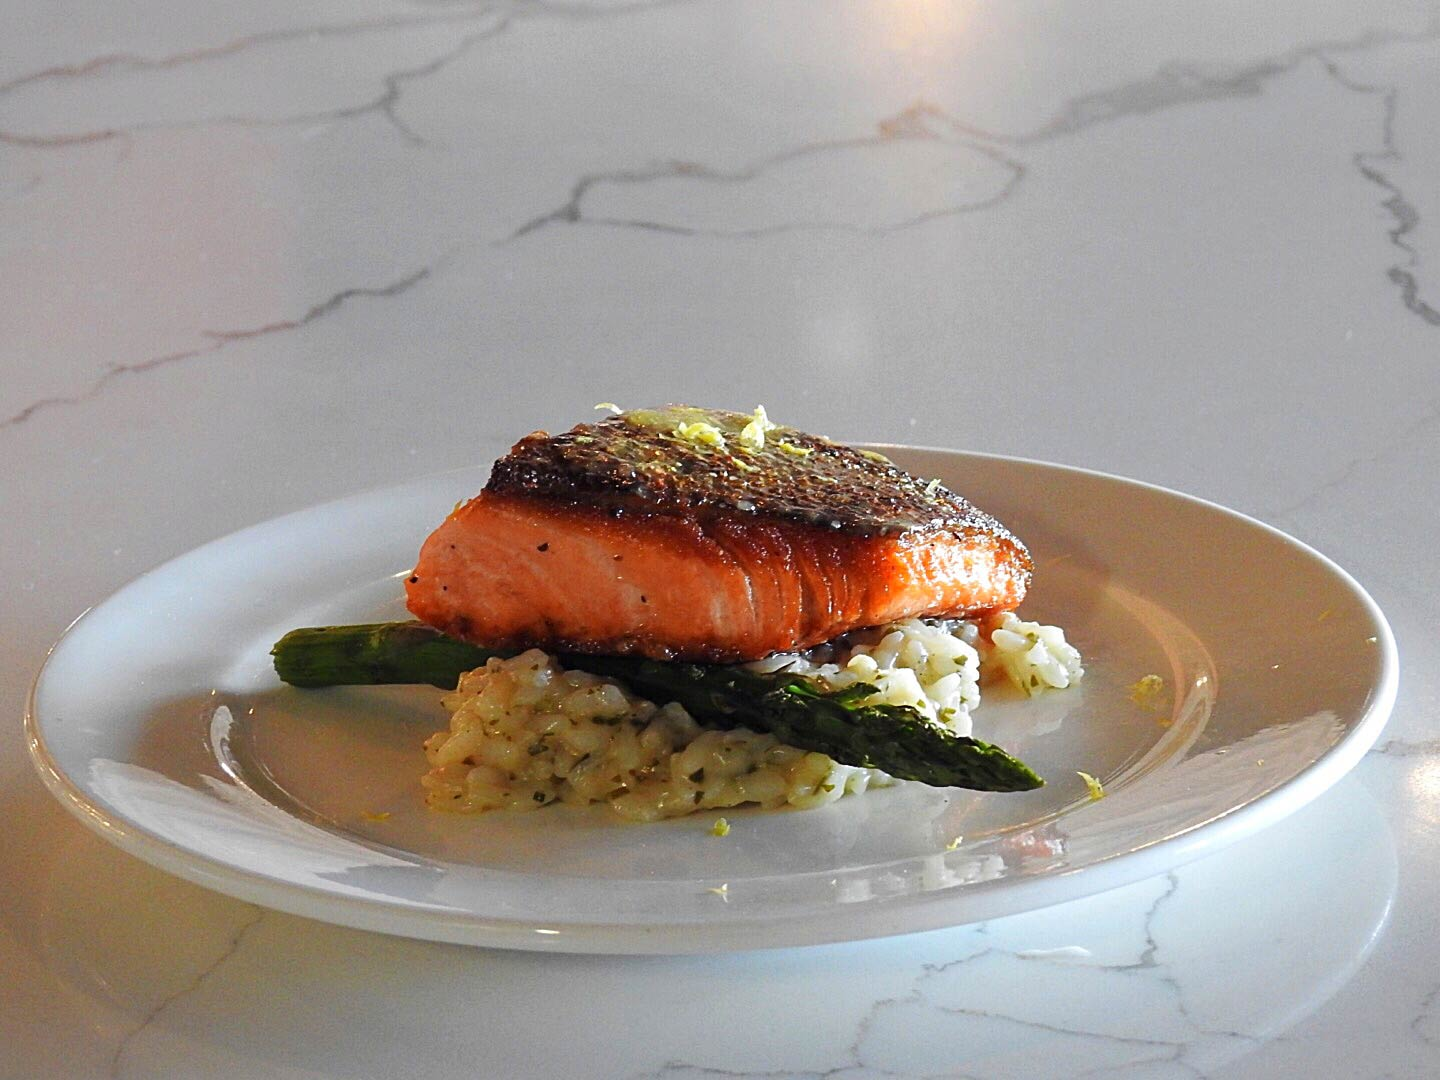 Sample-size portion of the salmon and risotto.